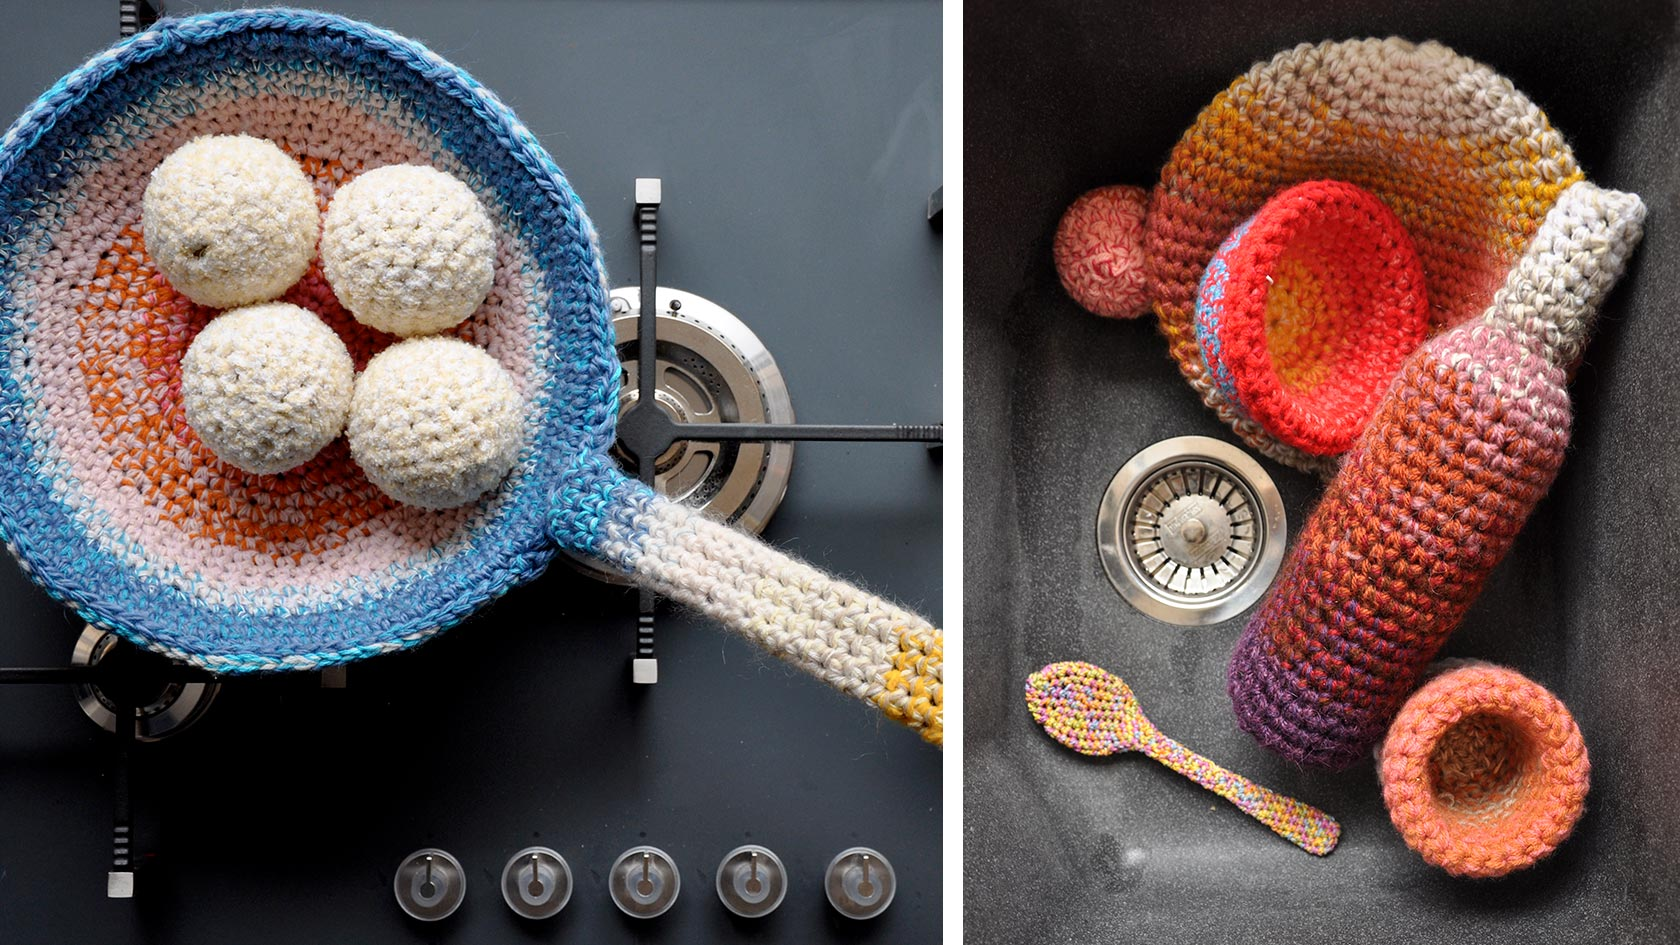 Crochet cooking